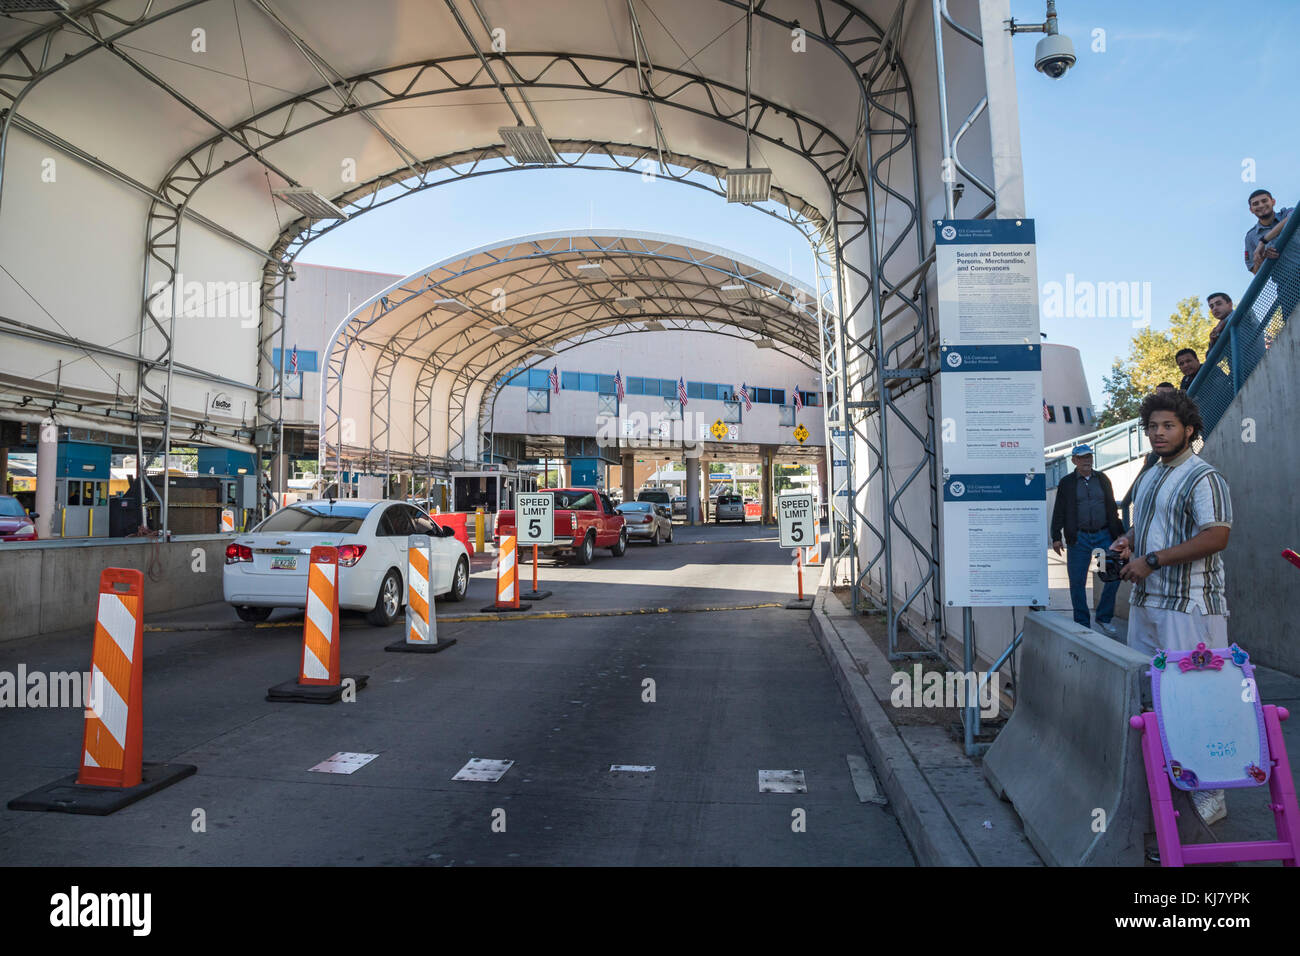 Nogales, Arizona - The Nogales-Grand Avenue border crossing between the United States and Mexico. - Stock Image